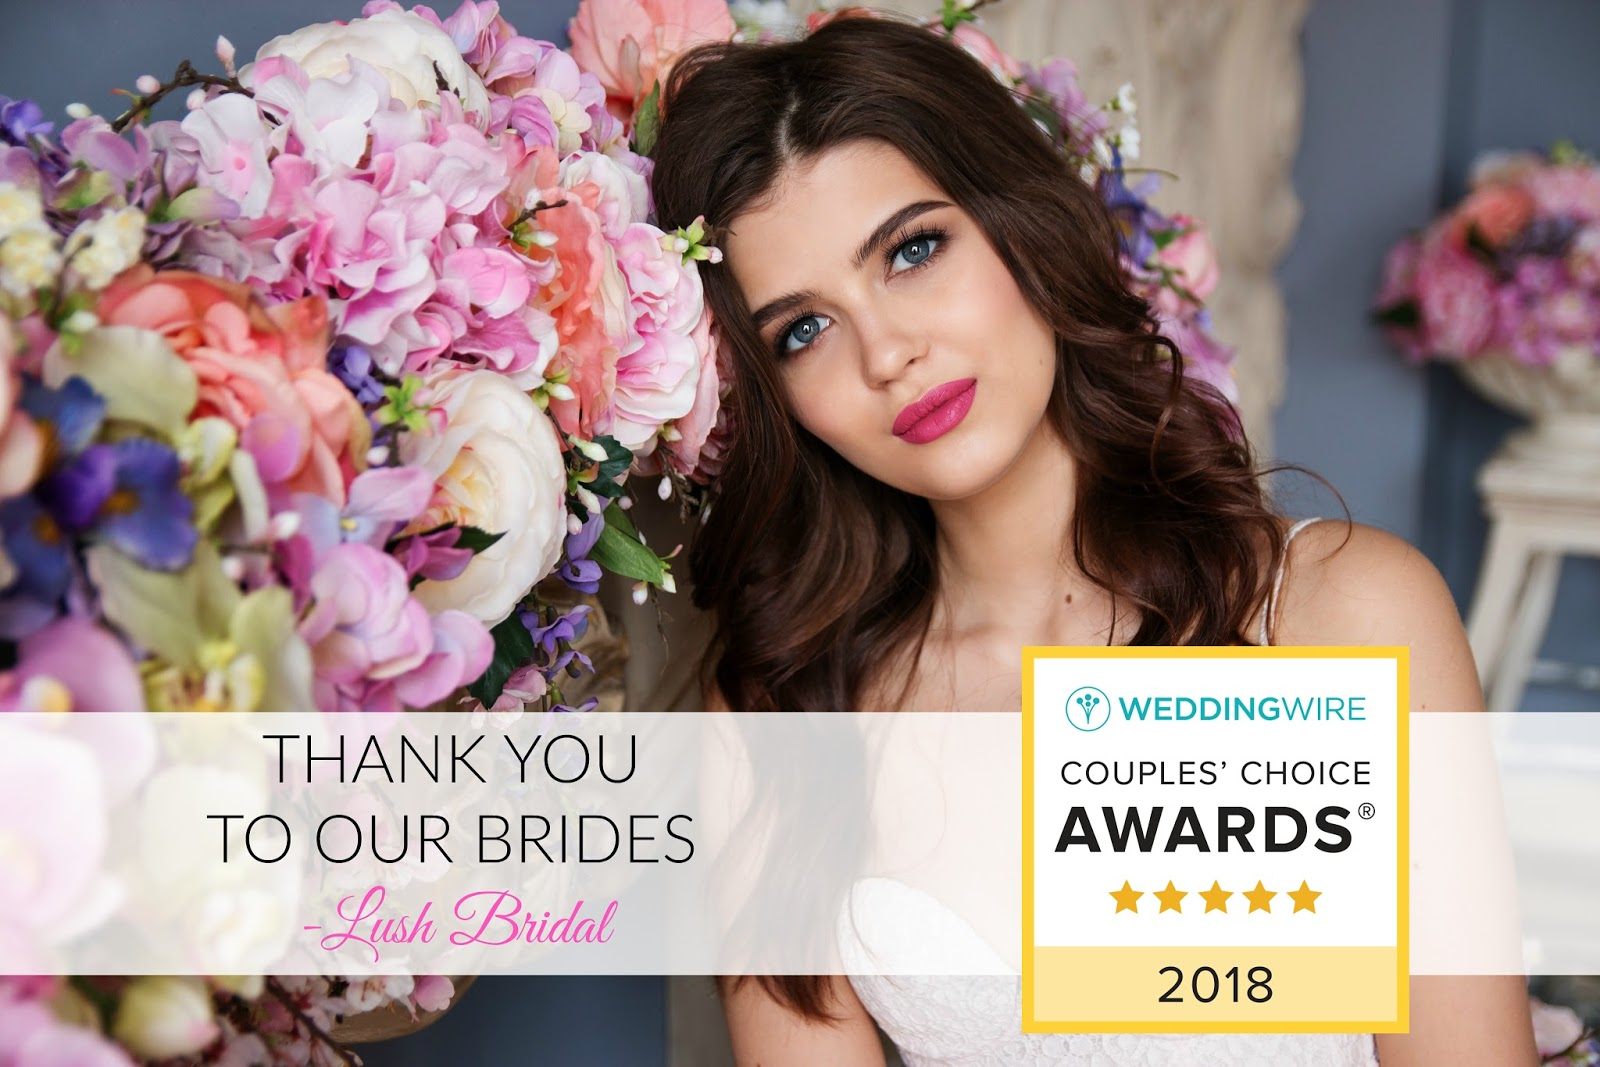 Lush Bridal has won the 2018 Couples' Choice Awards presented by Wedding Wire! We are being recognized as the top 5% of bridal makeup and hair teams ...